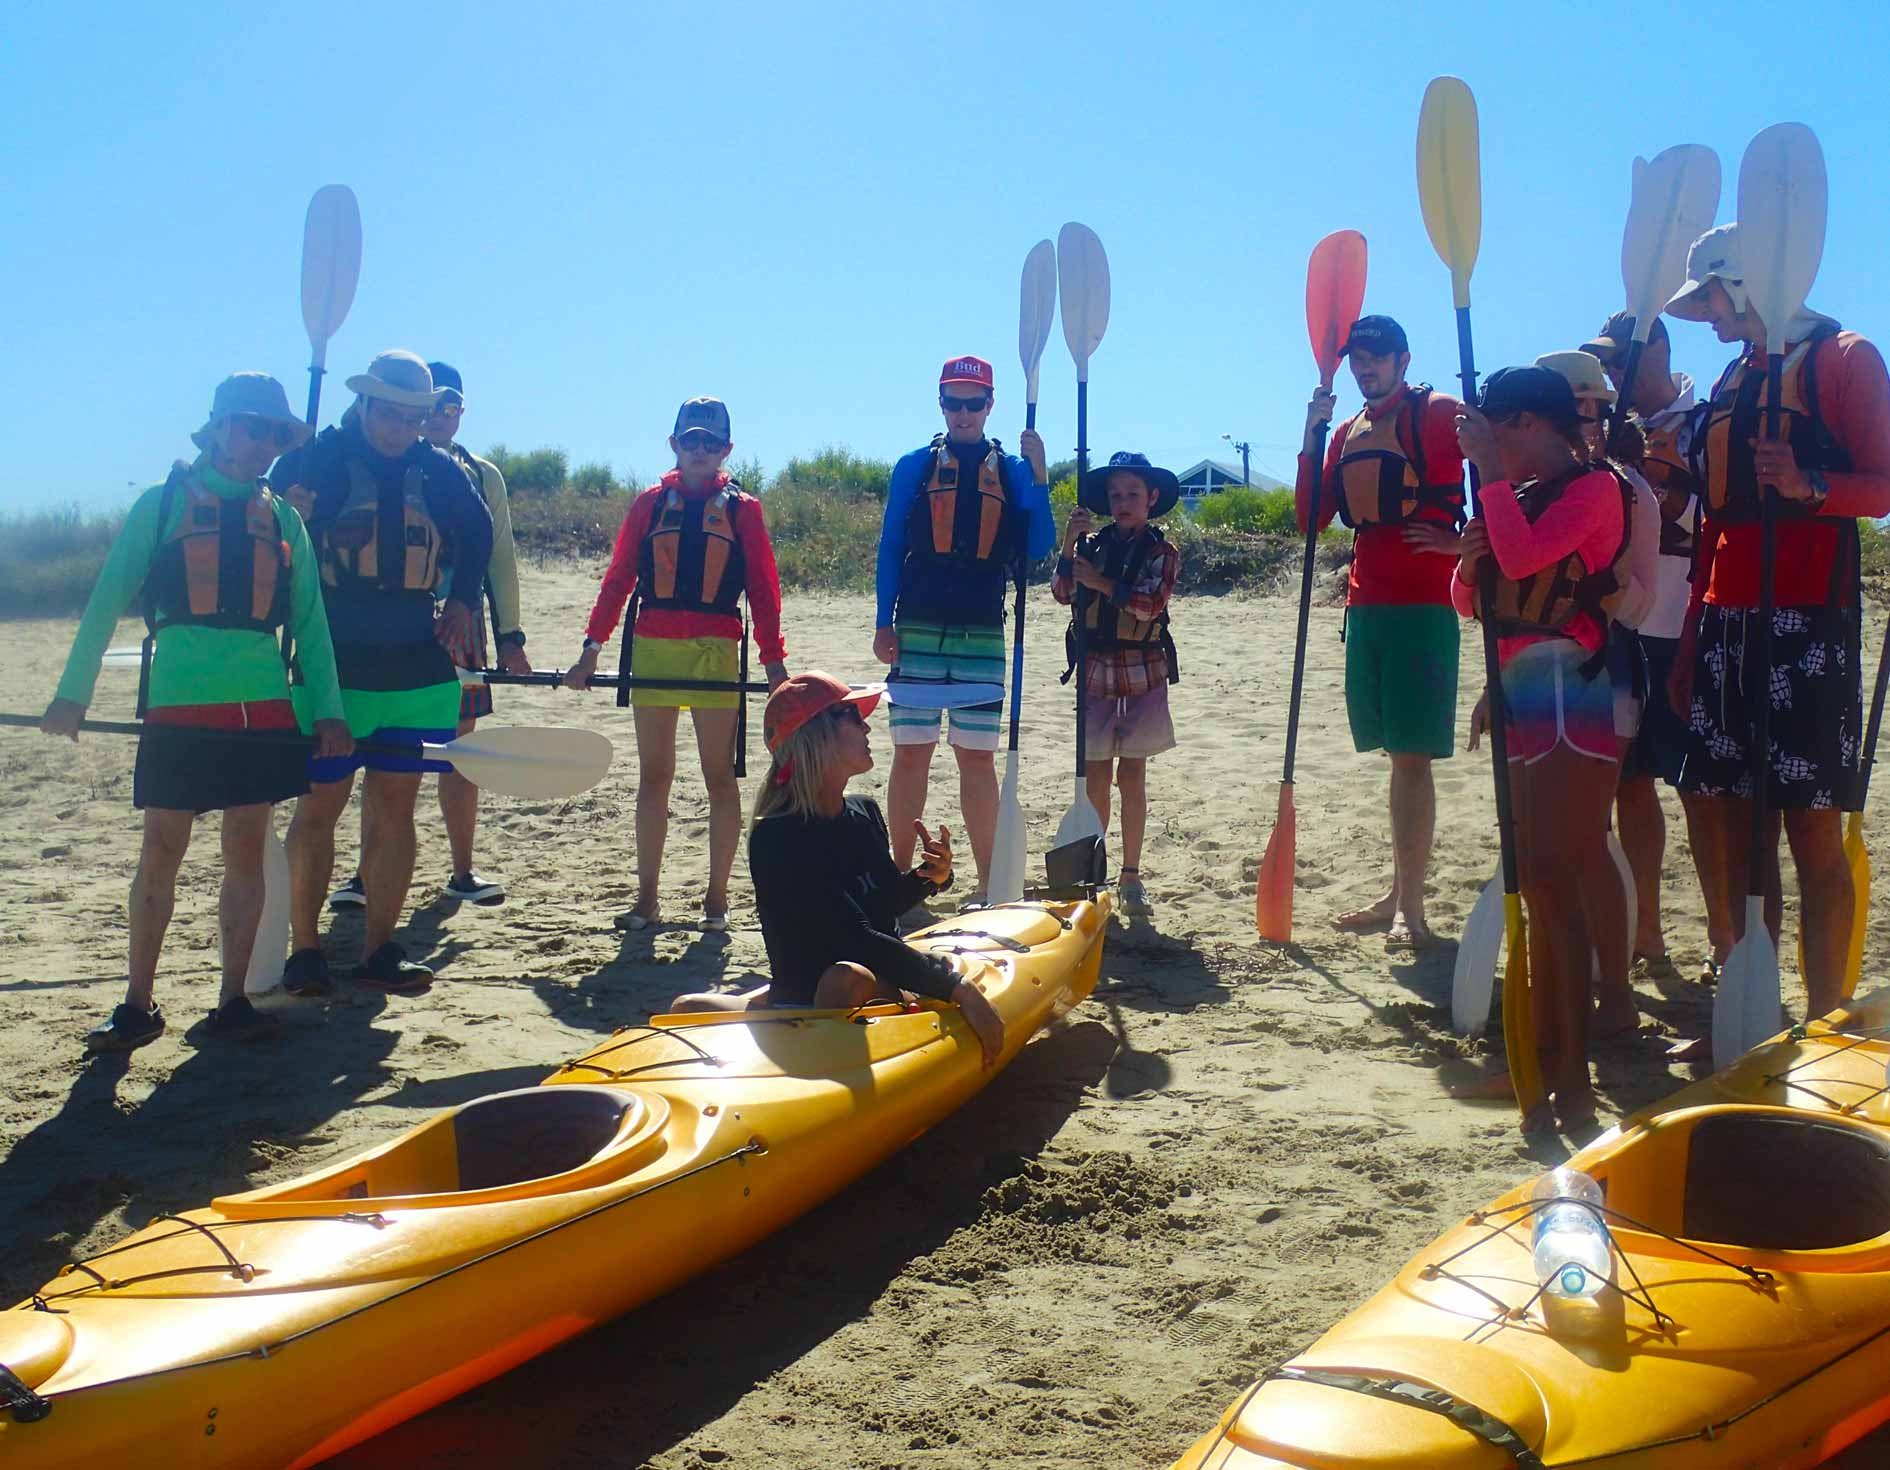 sea kayak courses, sea kayak training, Australian Canoeing, sea kayak skills, Capricorn Seakayaking, sea kayak Perth, sea kayak tour, Penguin Island,